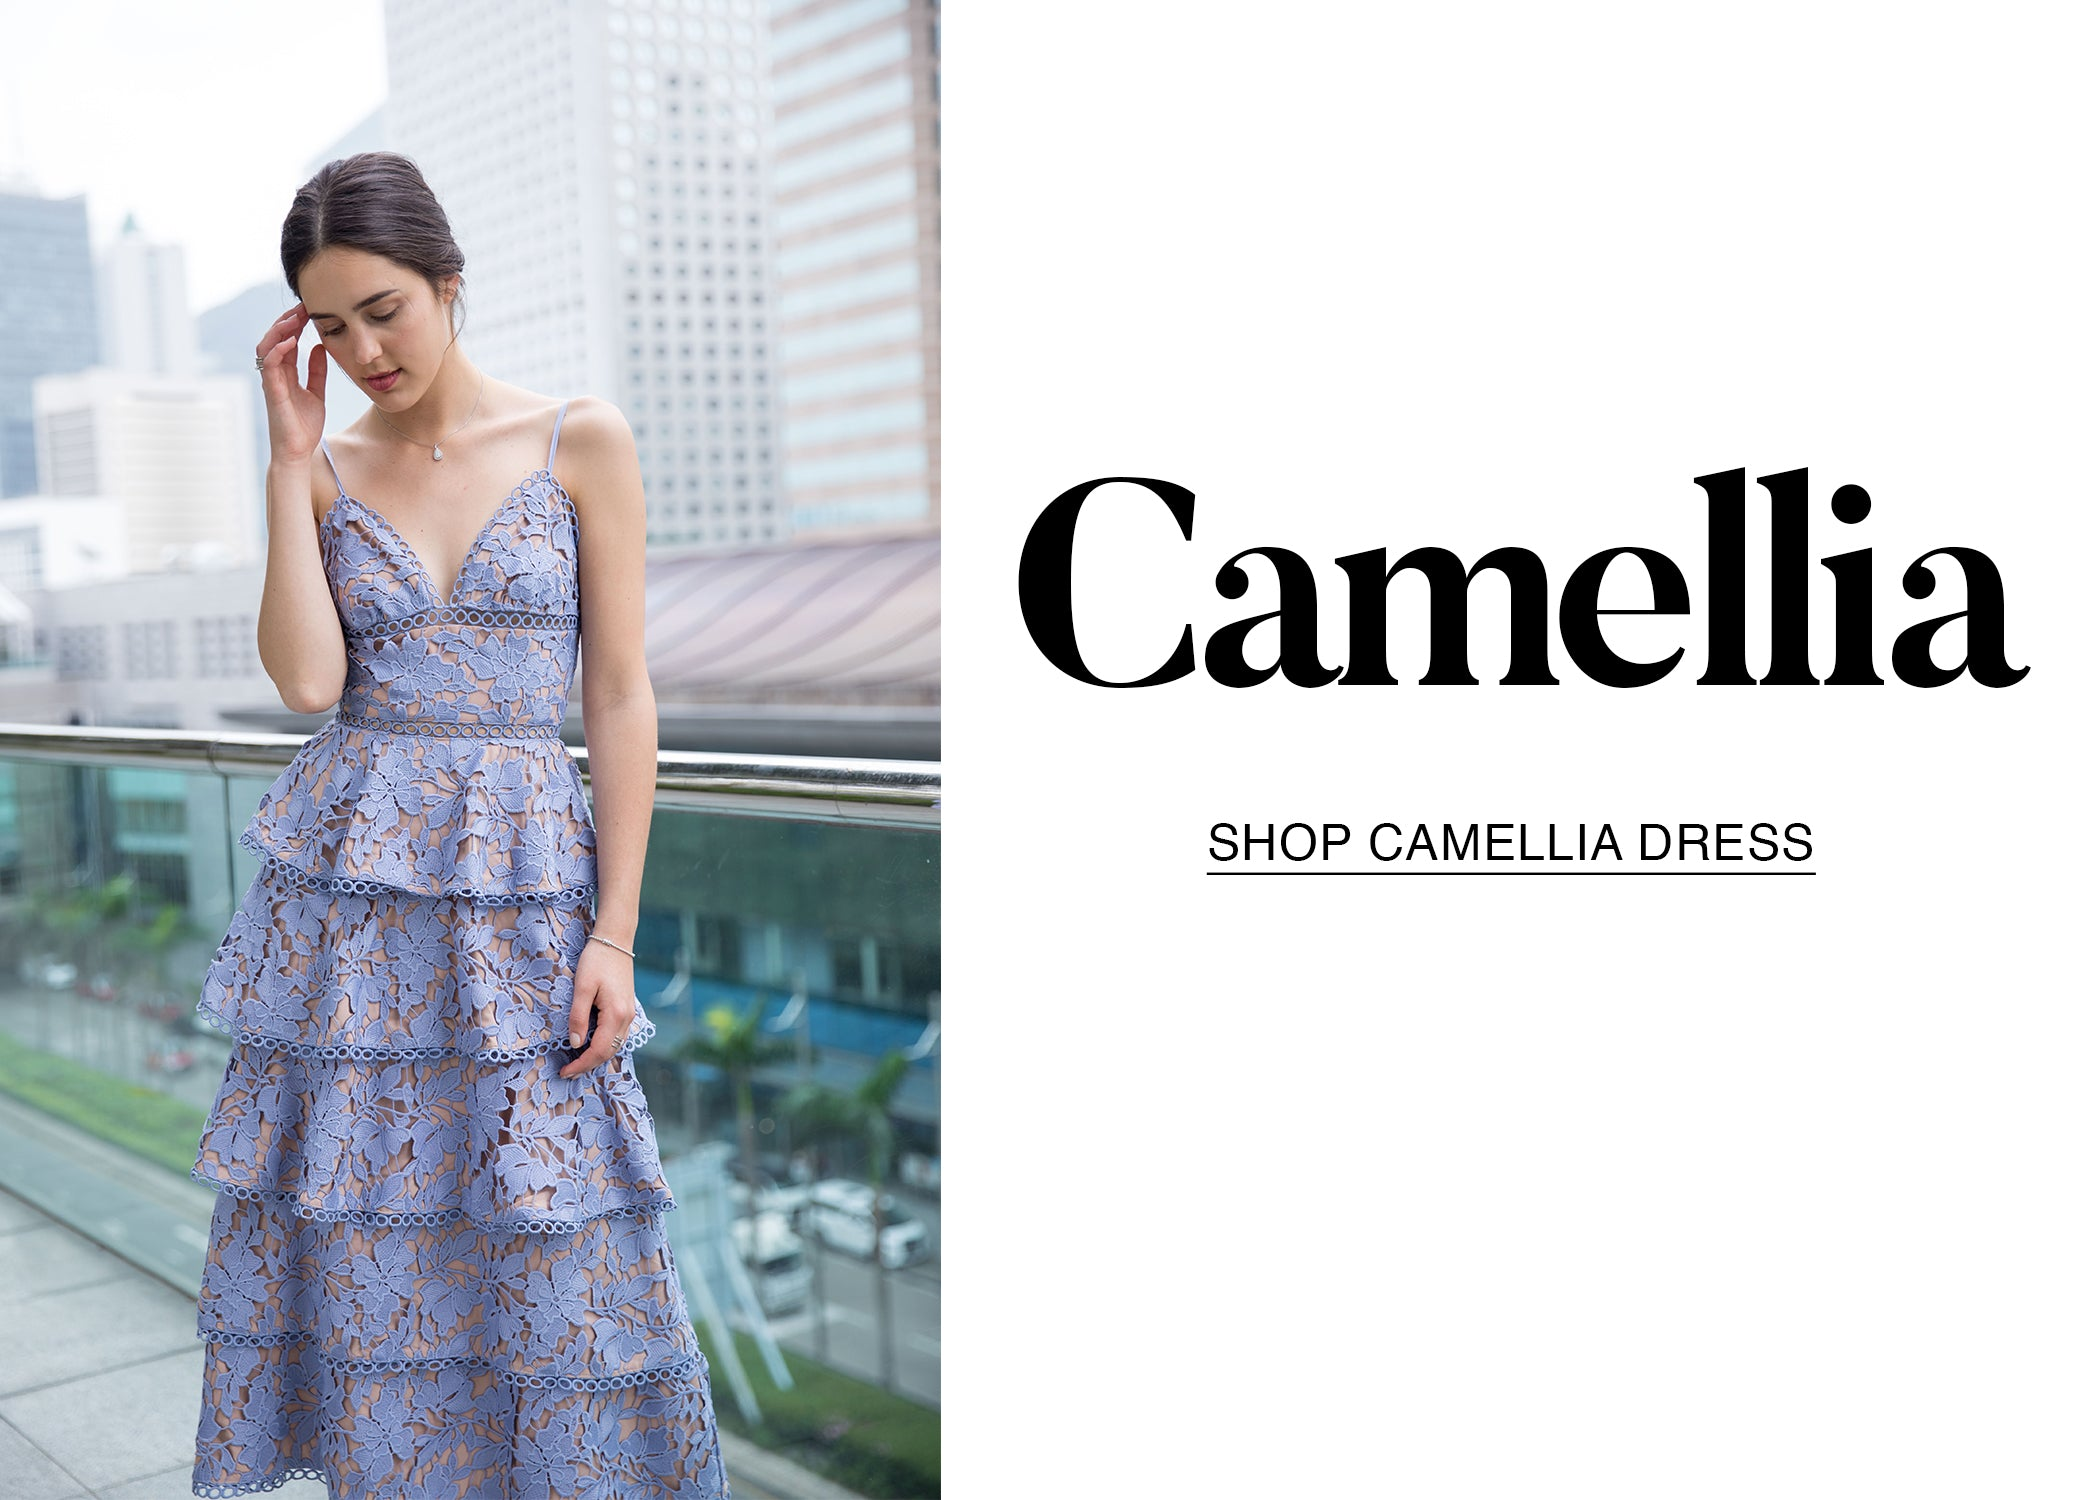 Camellia Tiered Guipure Lace Dress